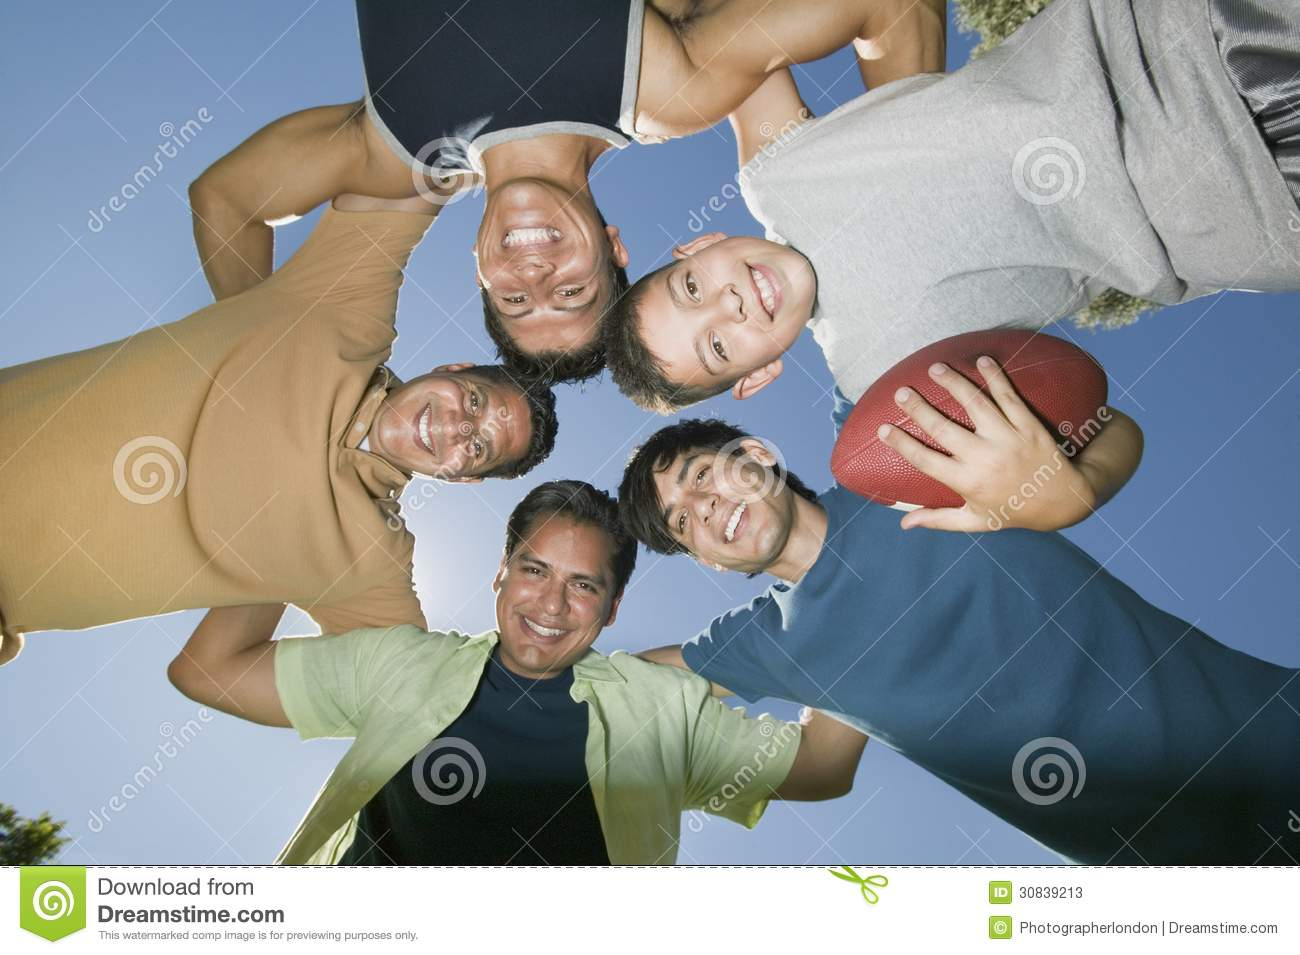 Boy (13-15) holding football with brothers and father in huddle view from below.